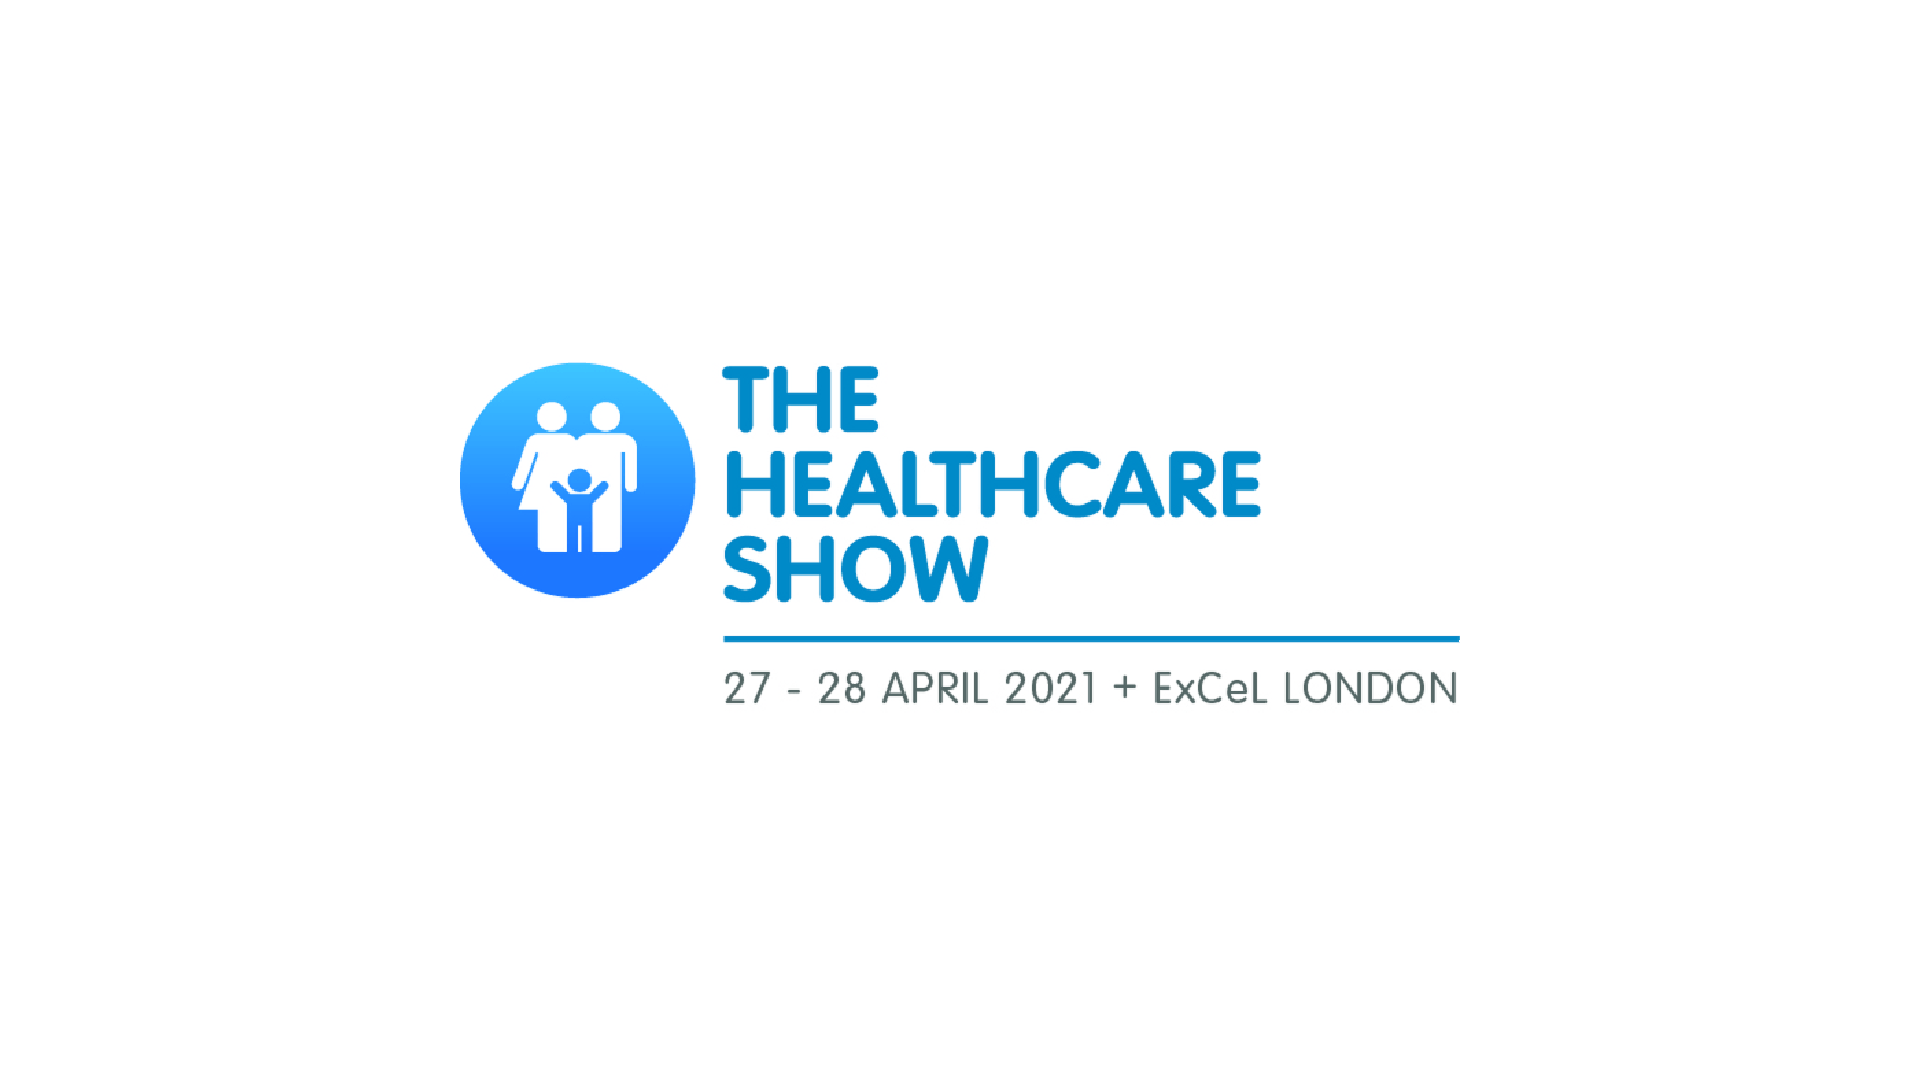 The Healthcare Show event logo